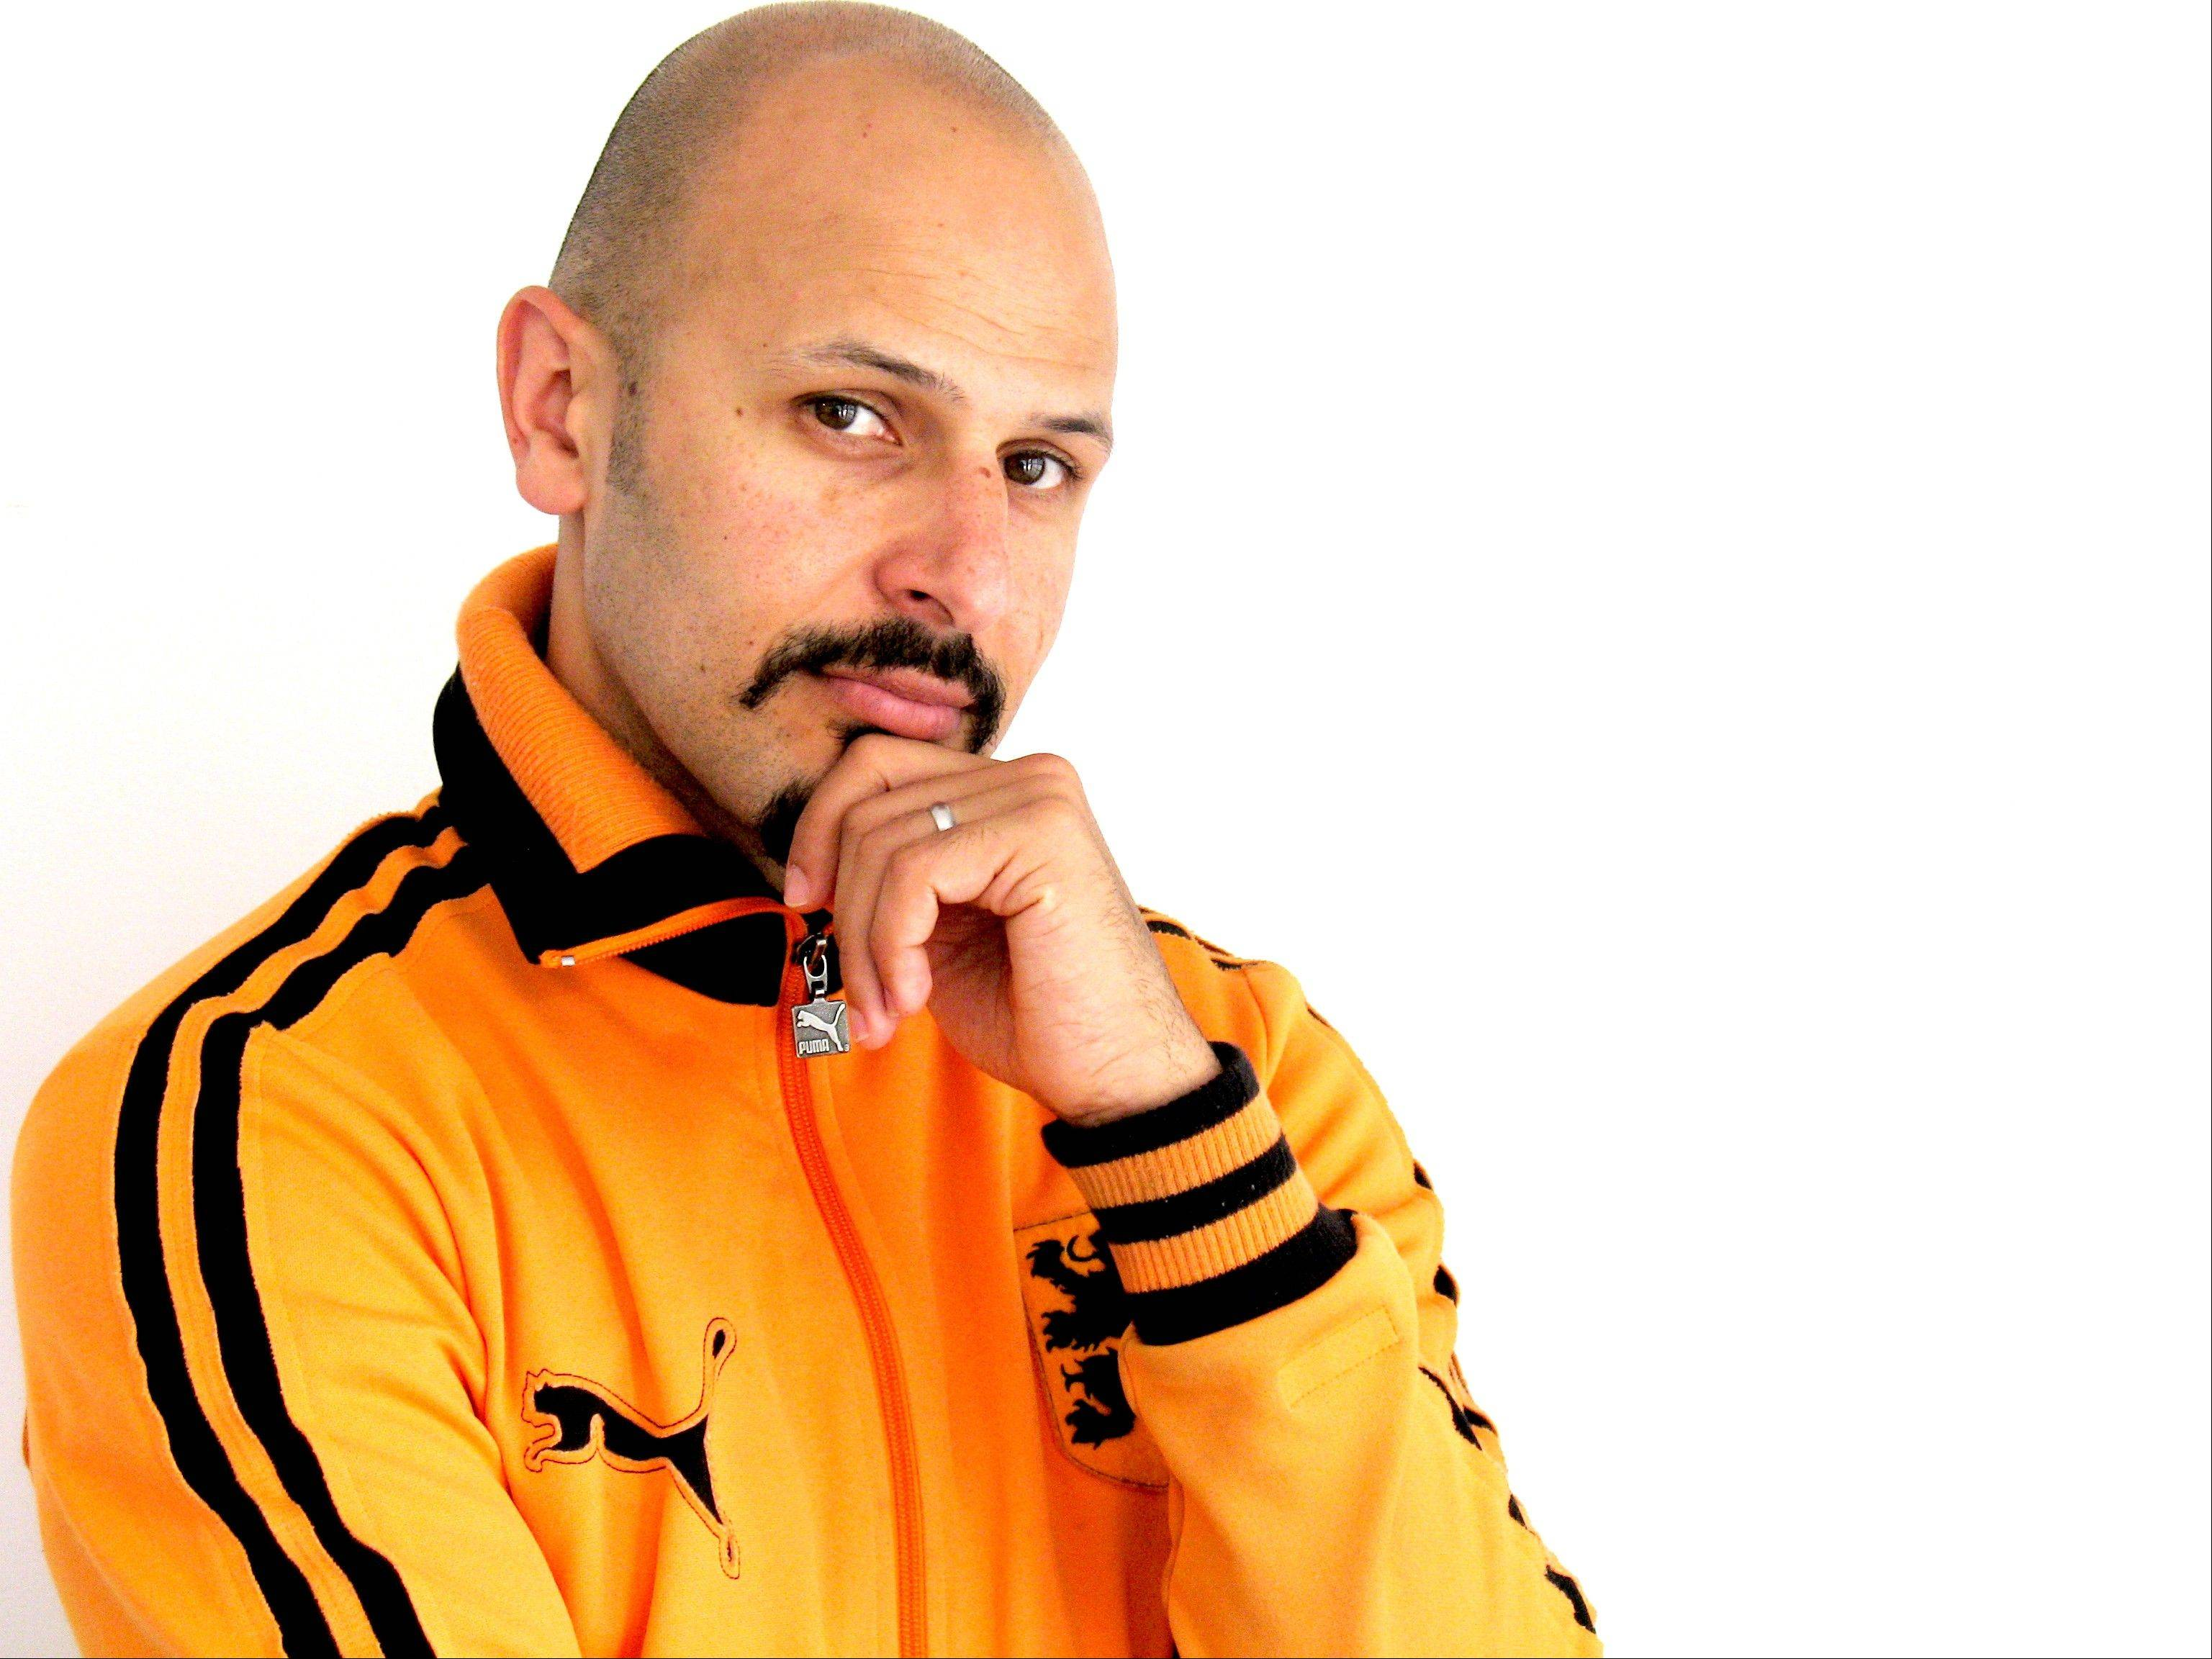 Comedian Maz Jobrani brings his standup routine to the Improv Comedy Showcase in Schaumburg.